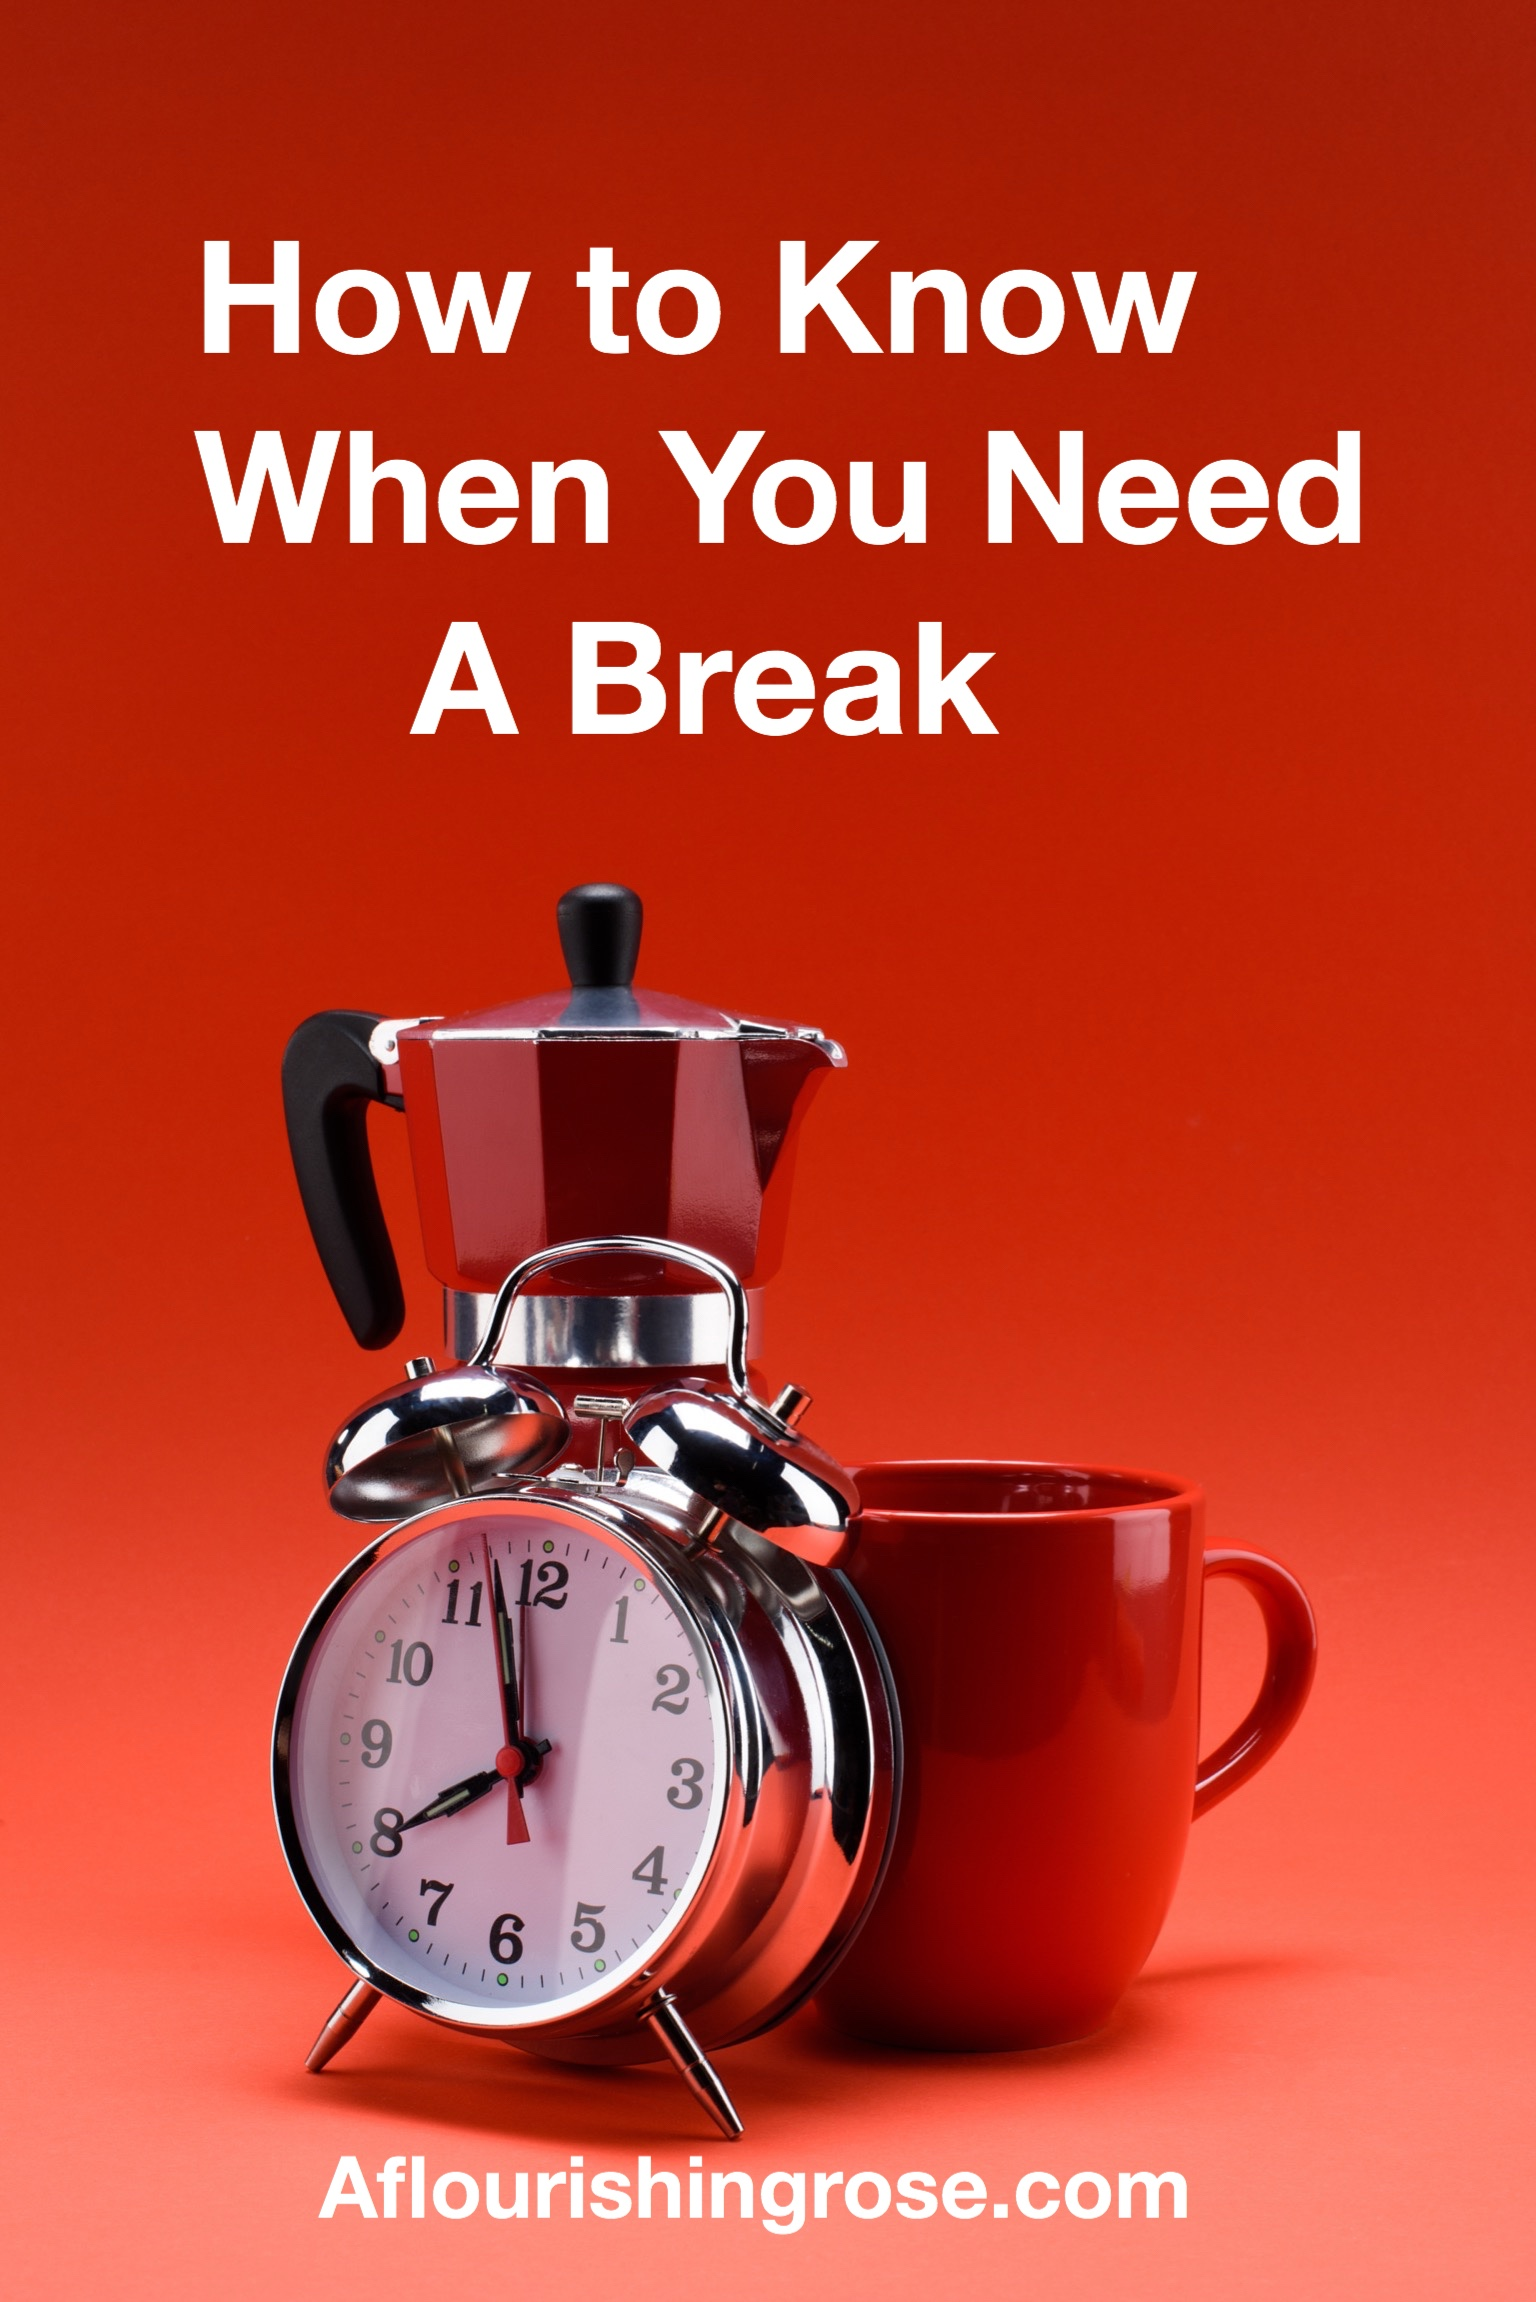 How to Know When You Need A Break